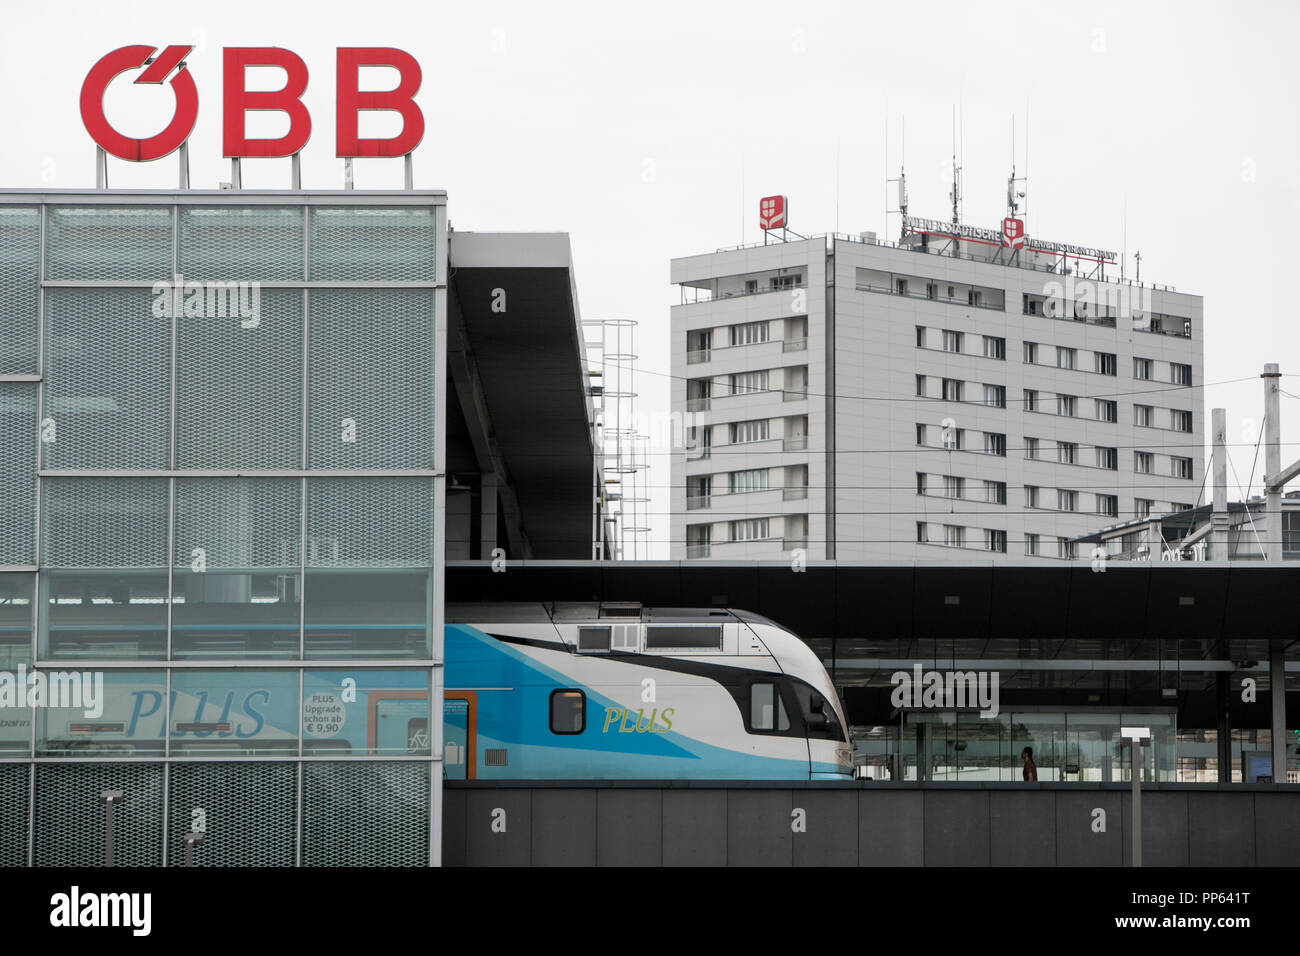 A logo sign outside of a OBB (Austrian Federal Railways) station in Vienna, Austria, on September 4, 2018. - Stock Image